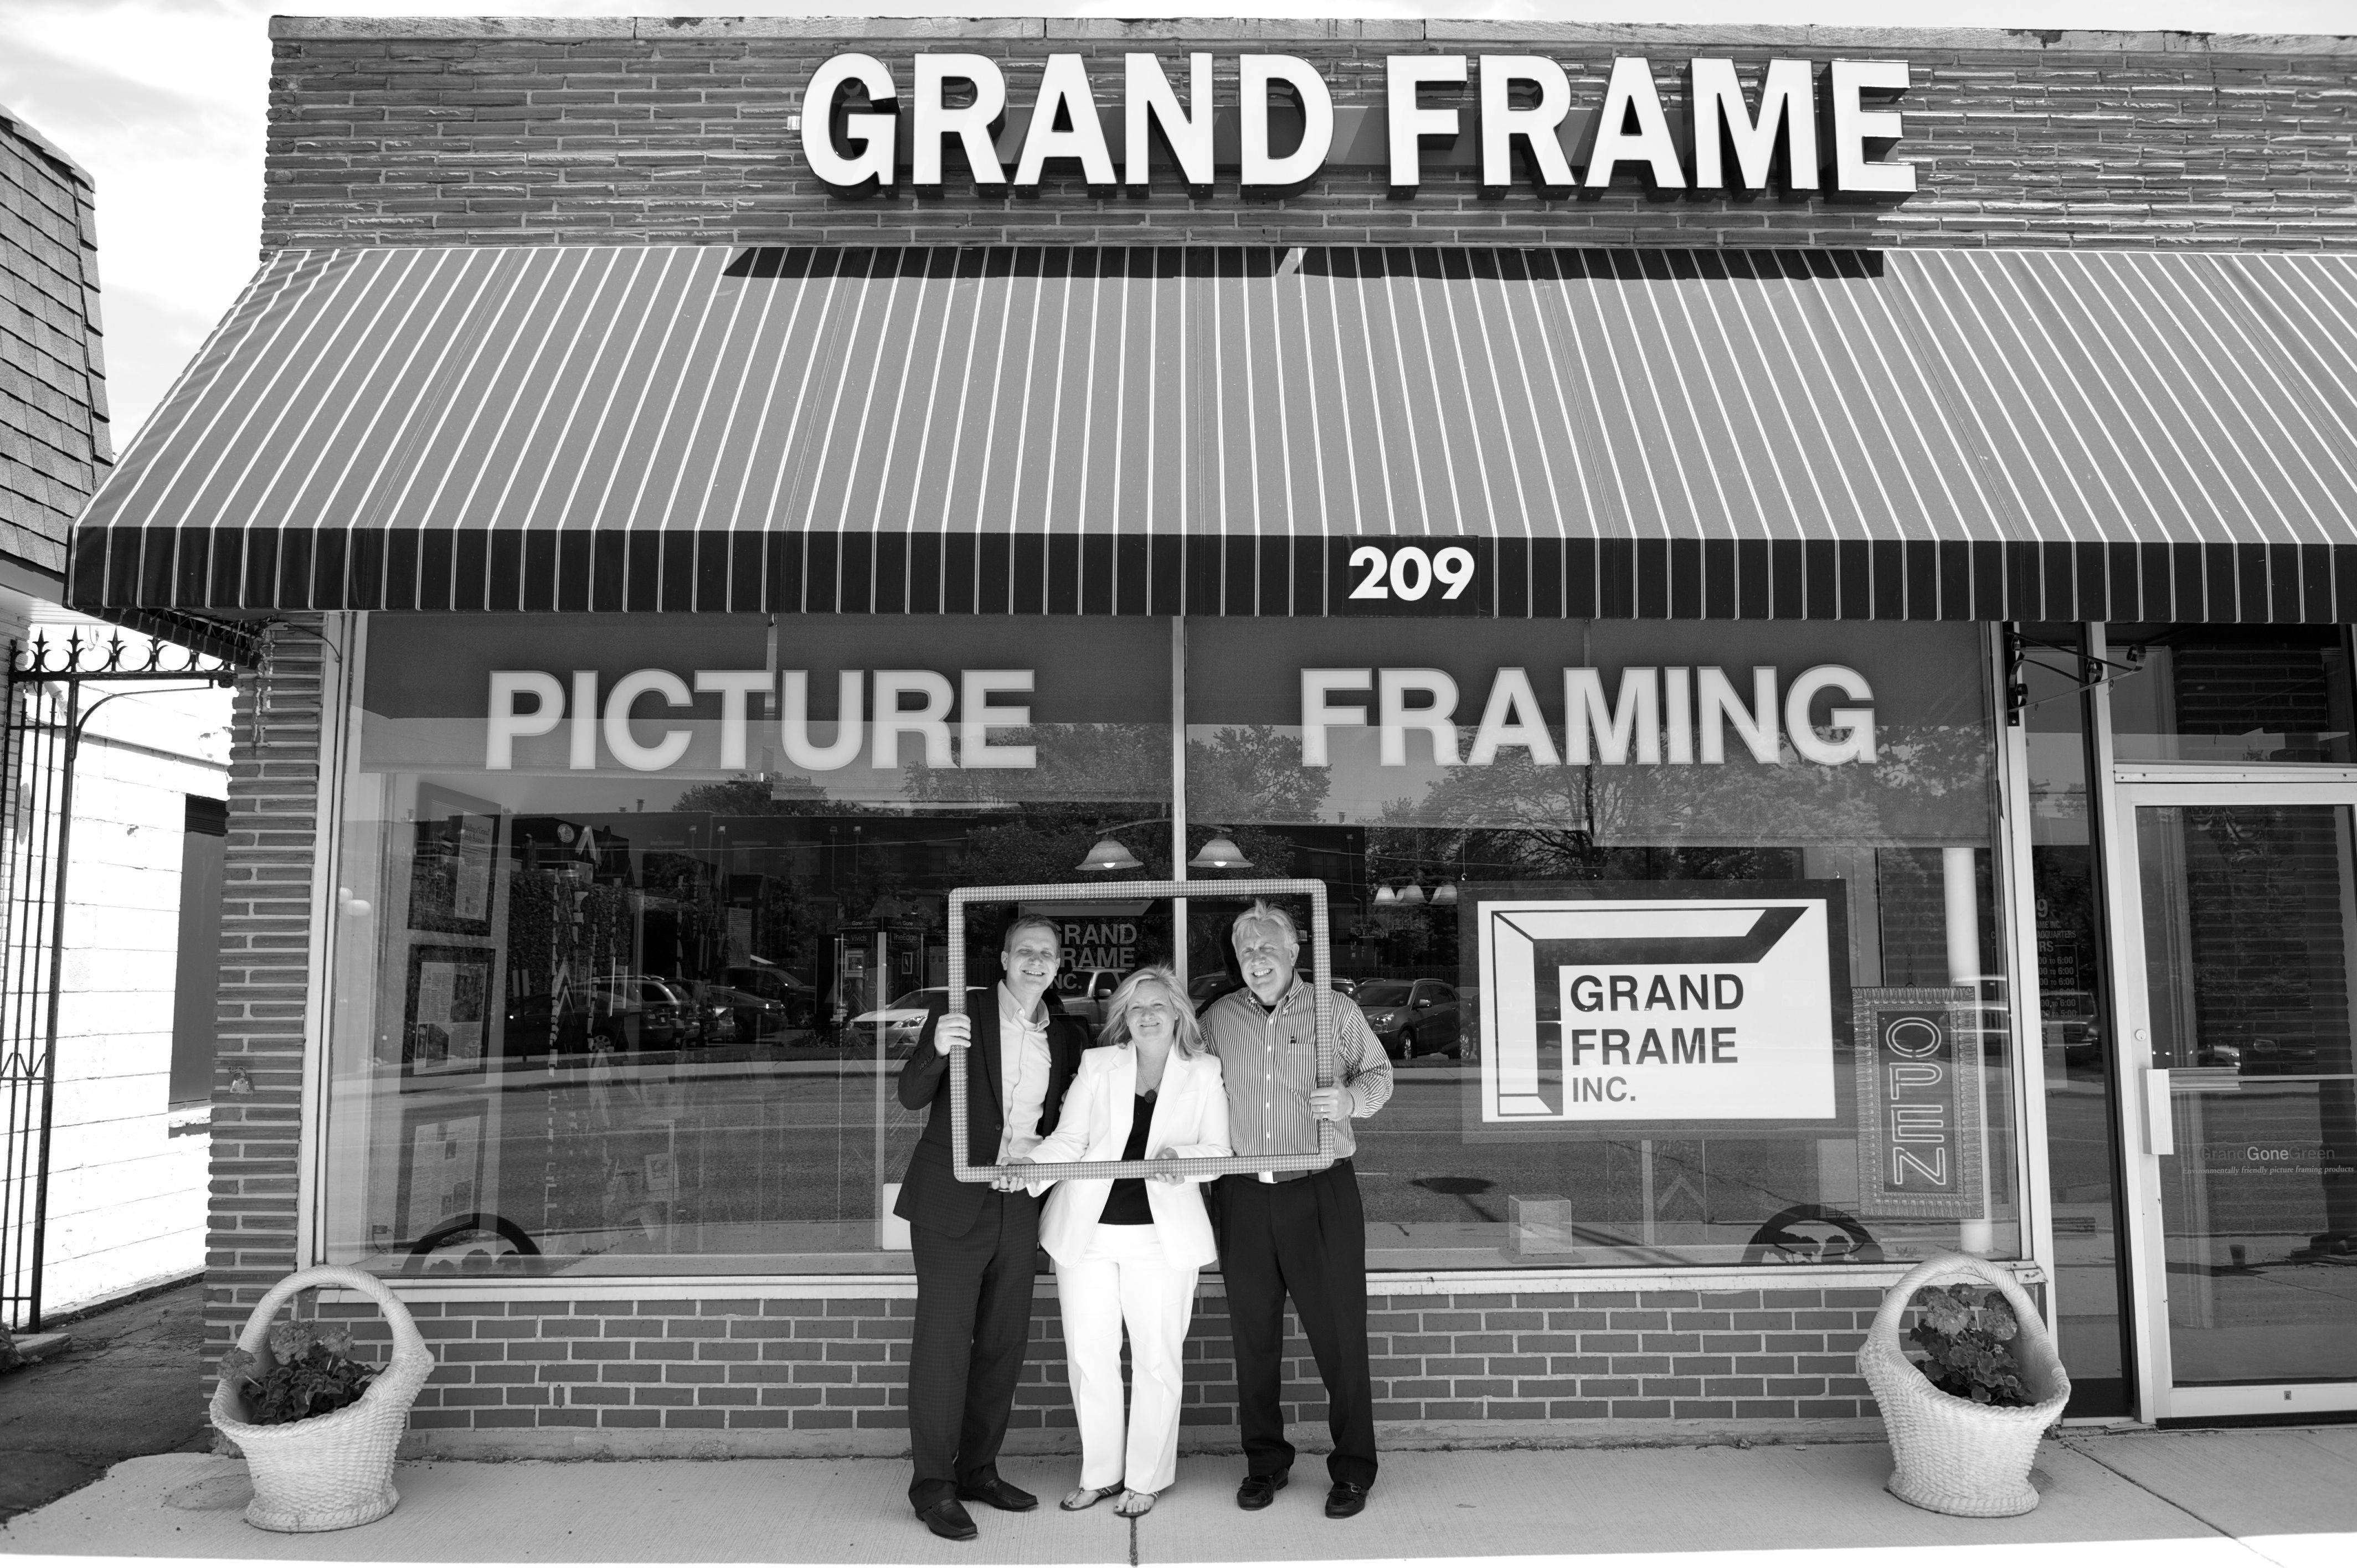 Grand Frame in Arlington Heights is a picture framing company that offers framing to residential clients, corporations and government institutions.